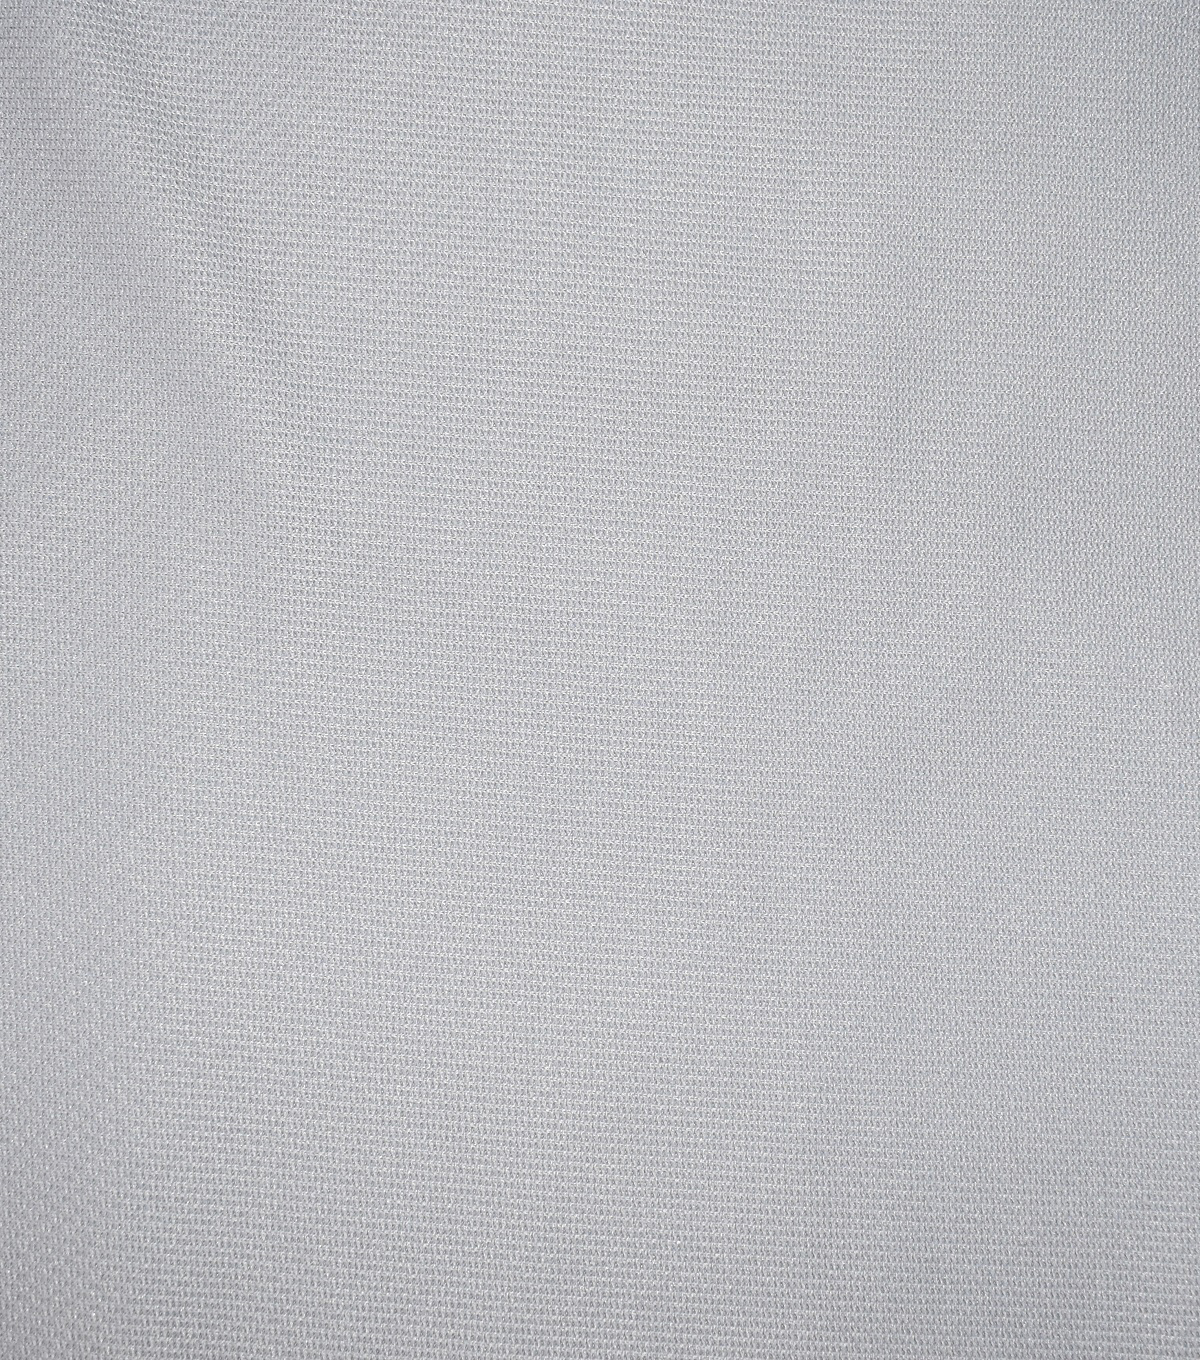 Fast Fashion Sport Pique Fabric, Grey